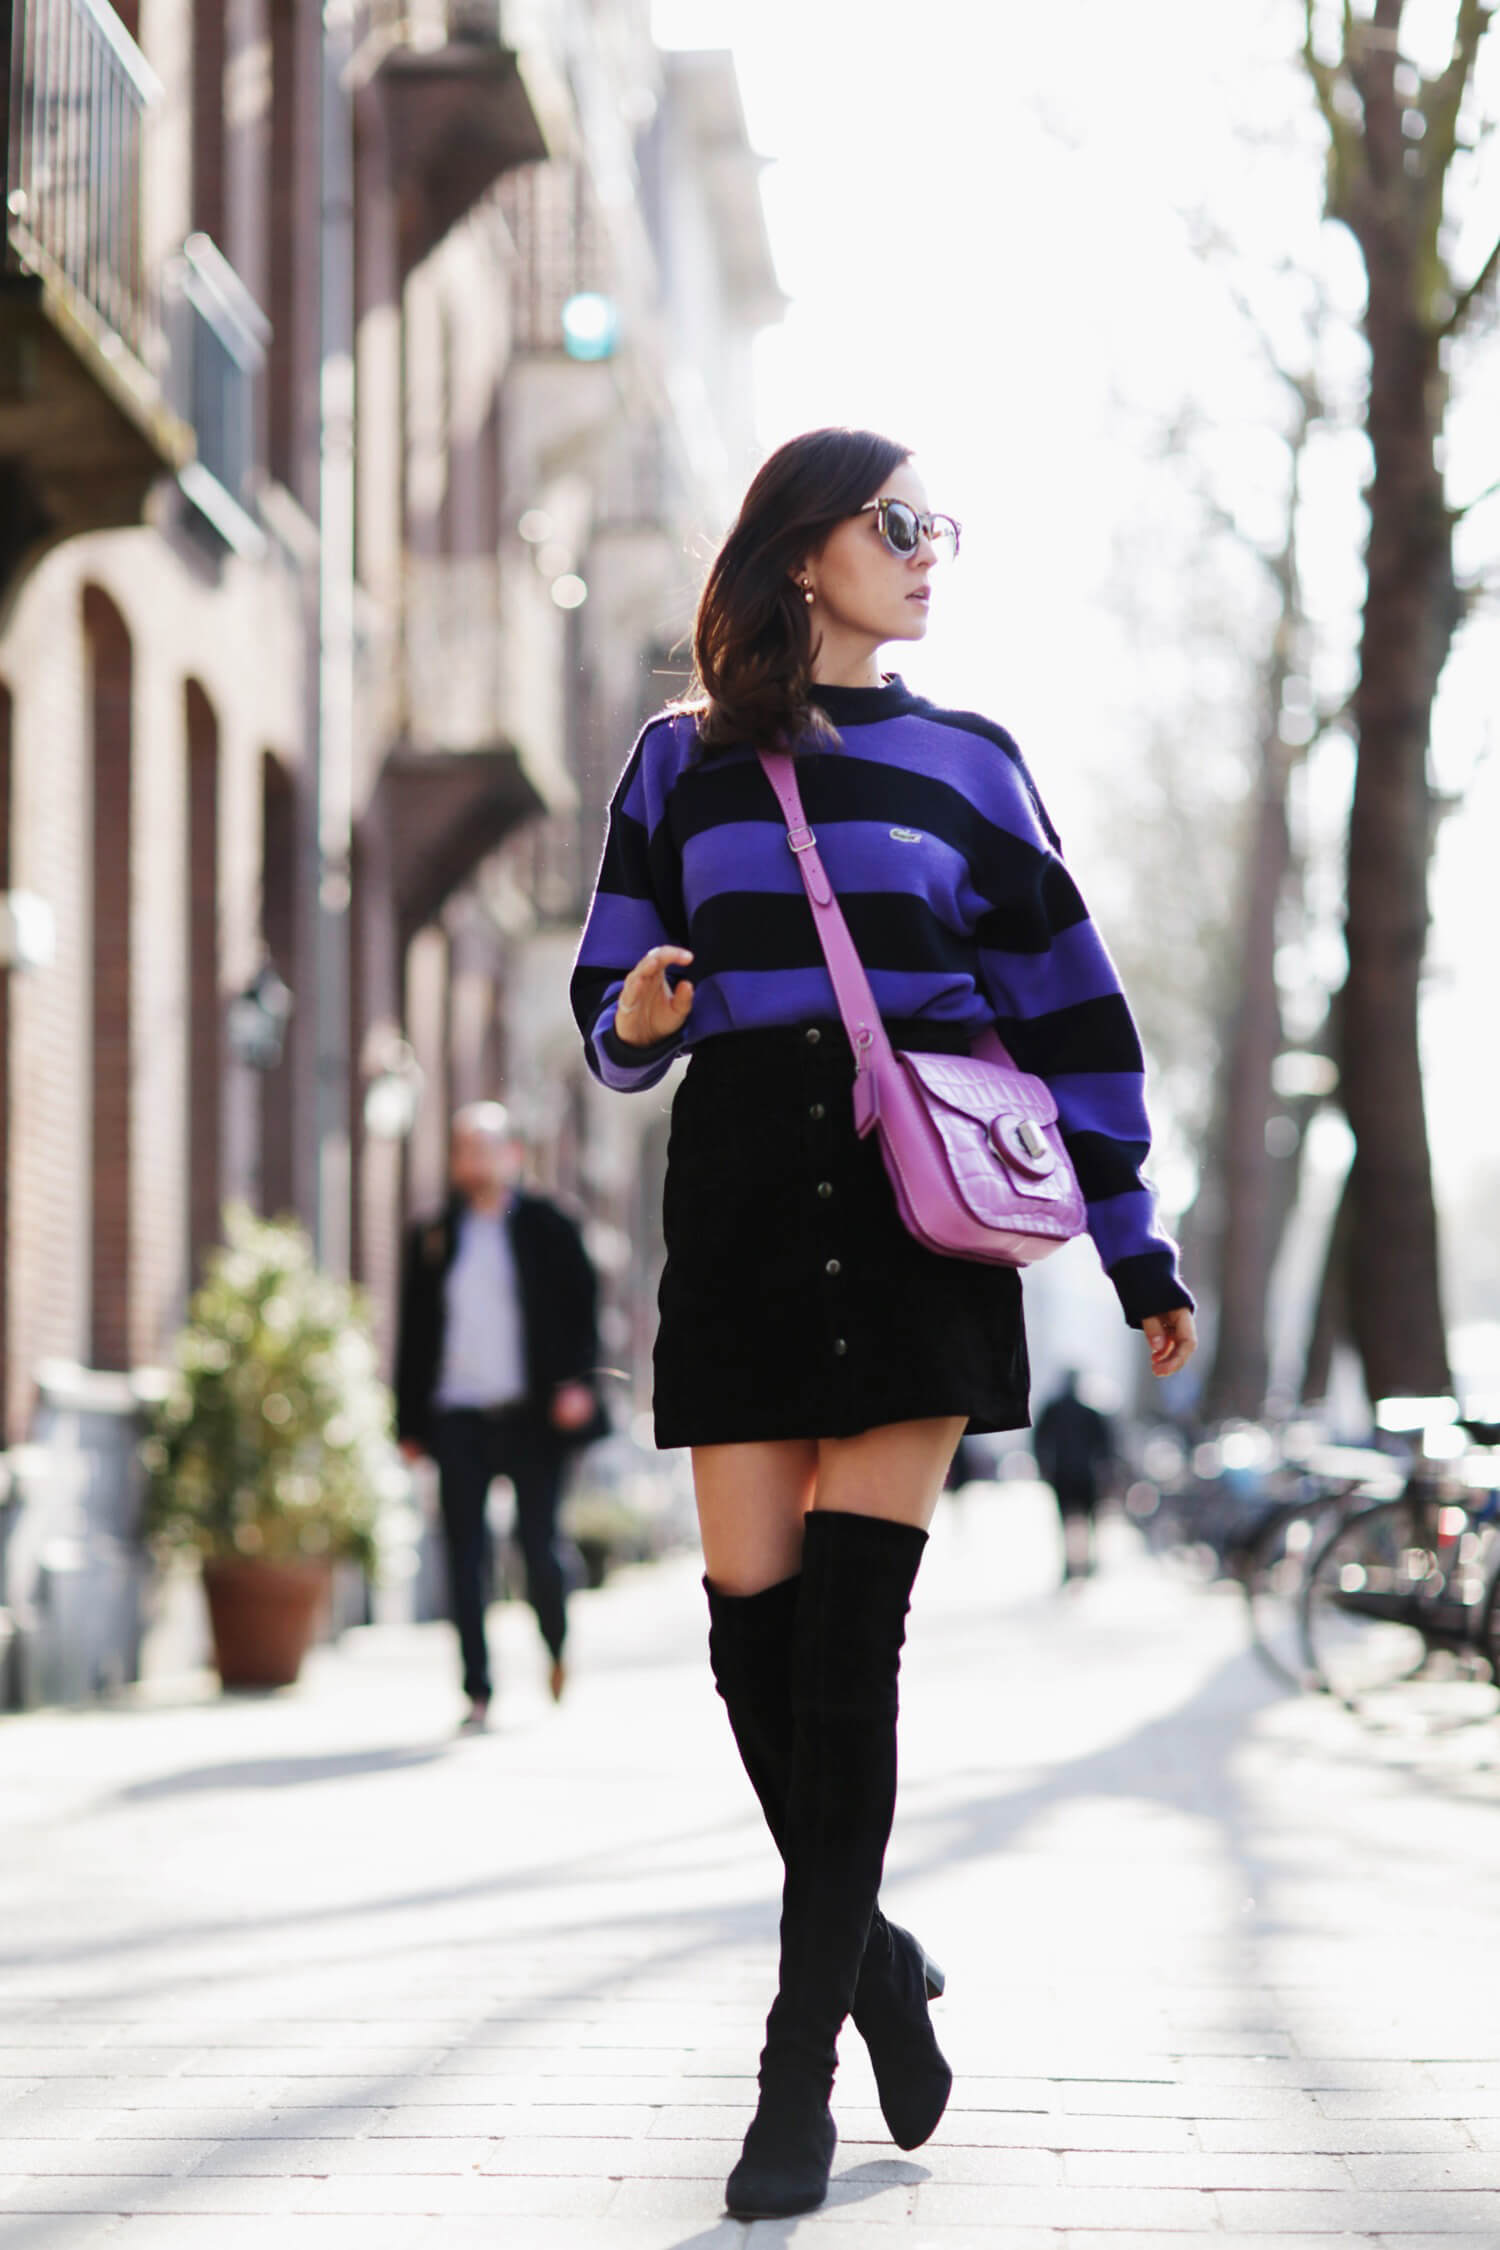 Stylescrapbook - continuation of the seventies trend